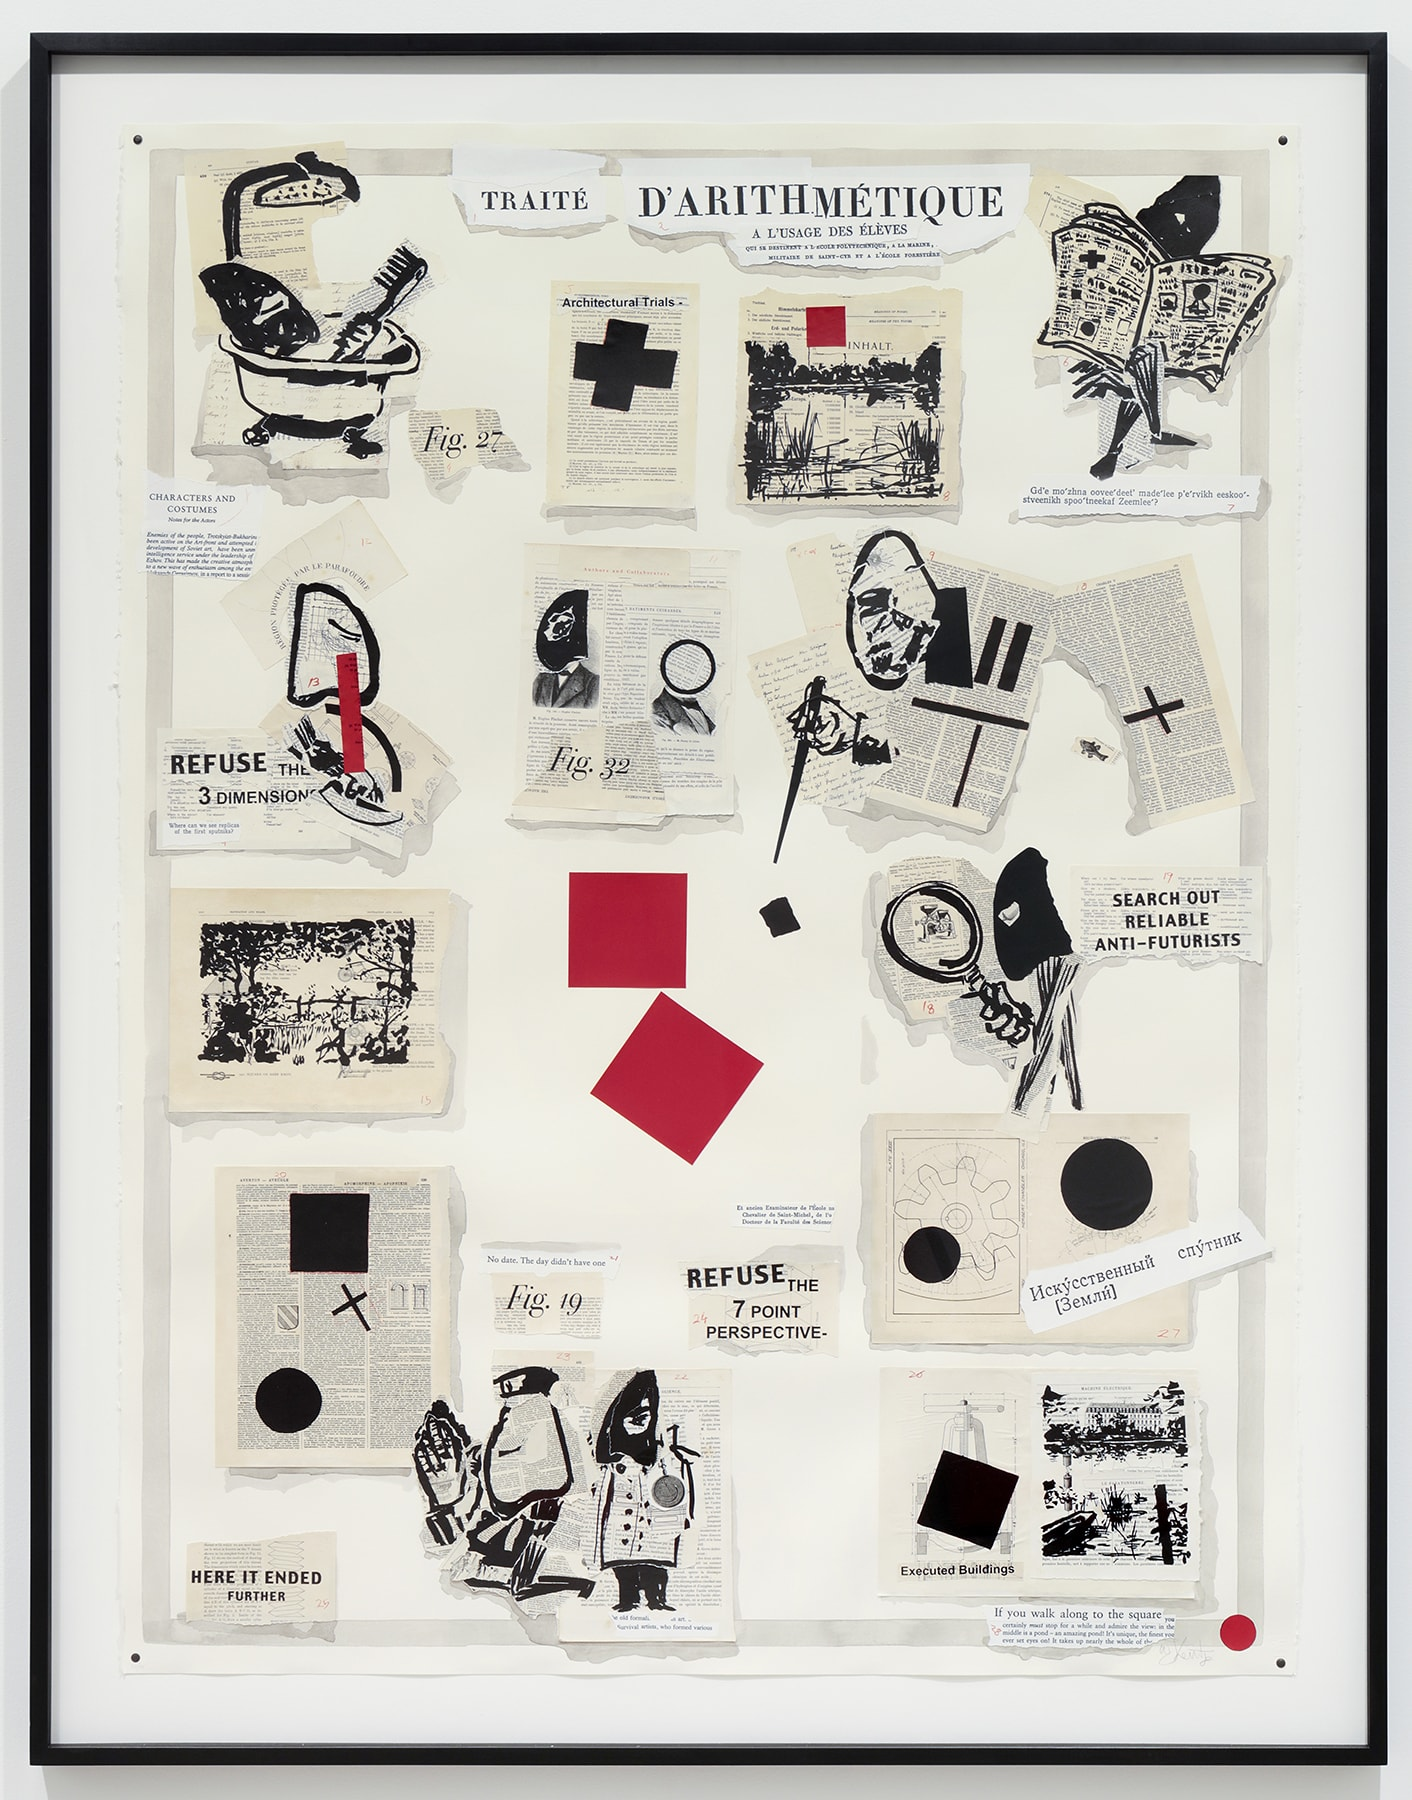 William Kentridge, Traité D'Arithmétique, 2007